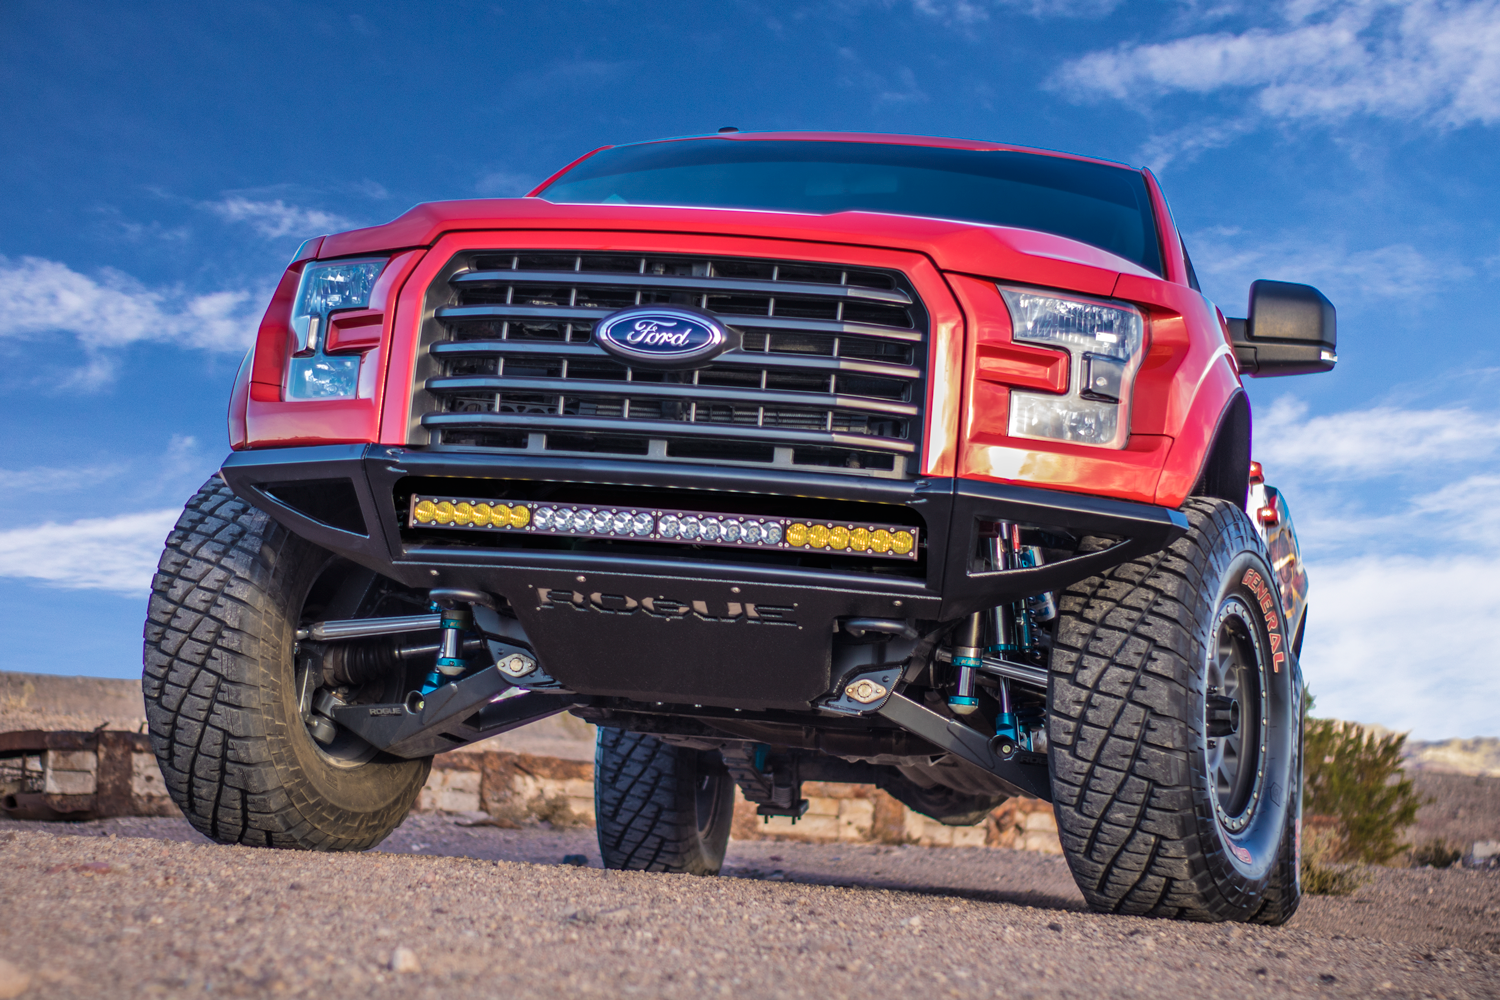 Rogue Racing Innovative Offroad Products And Designs. Stage 16 Front Suspension 2017 Ford Raptor. Ford. 2004 Ford Excursion 4x4 Front End Diagram At Scoala.co